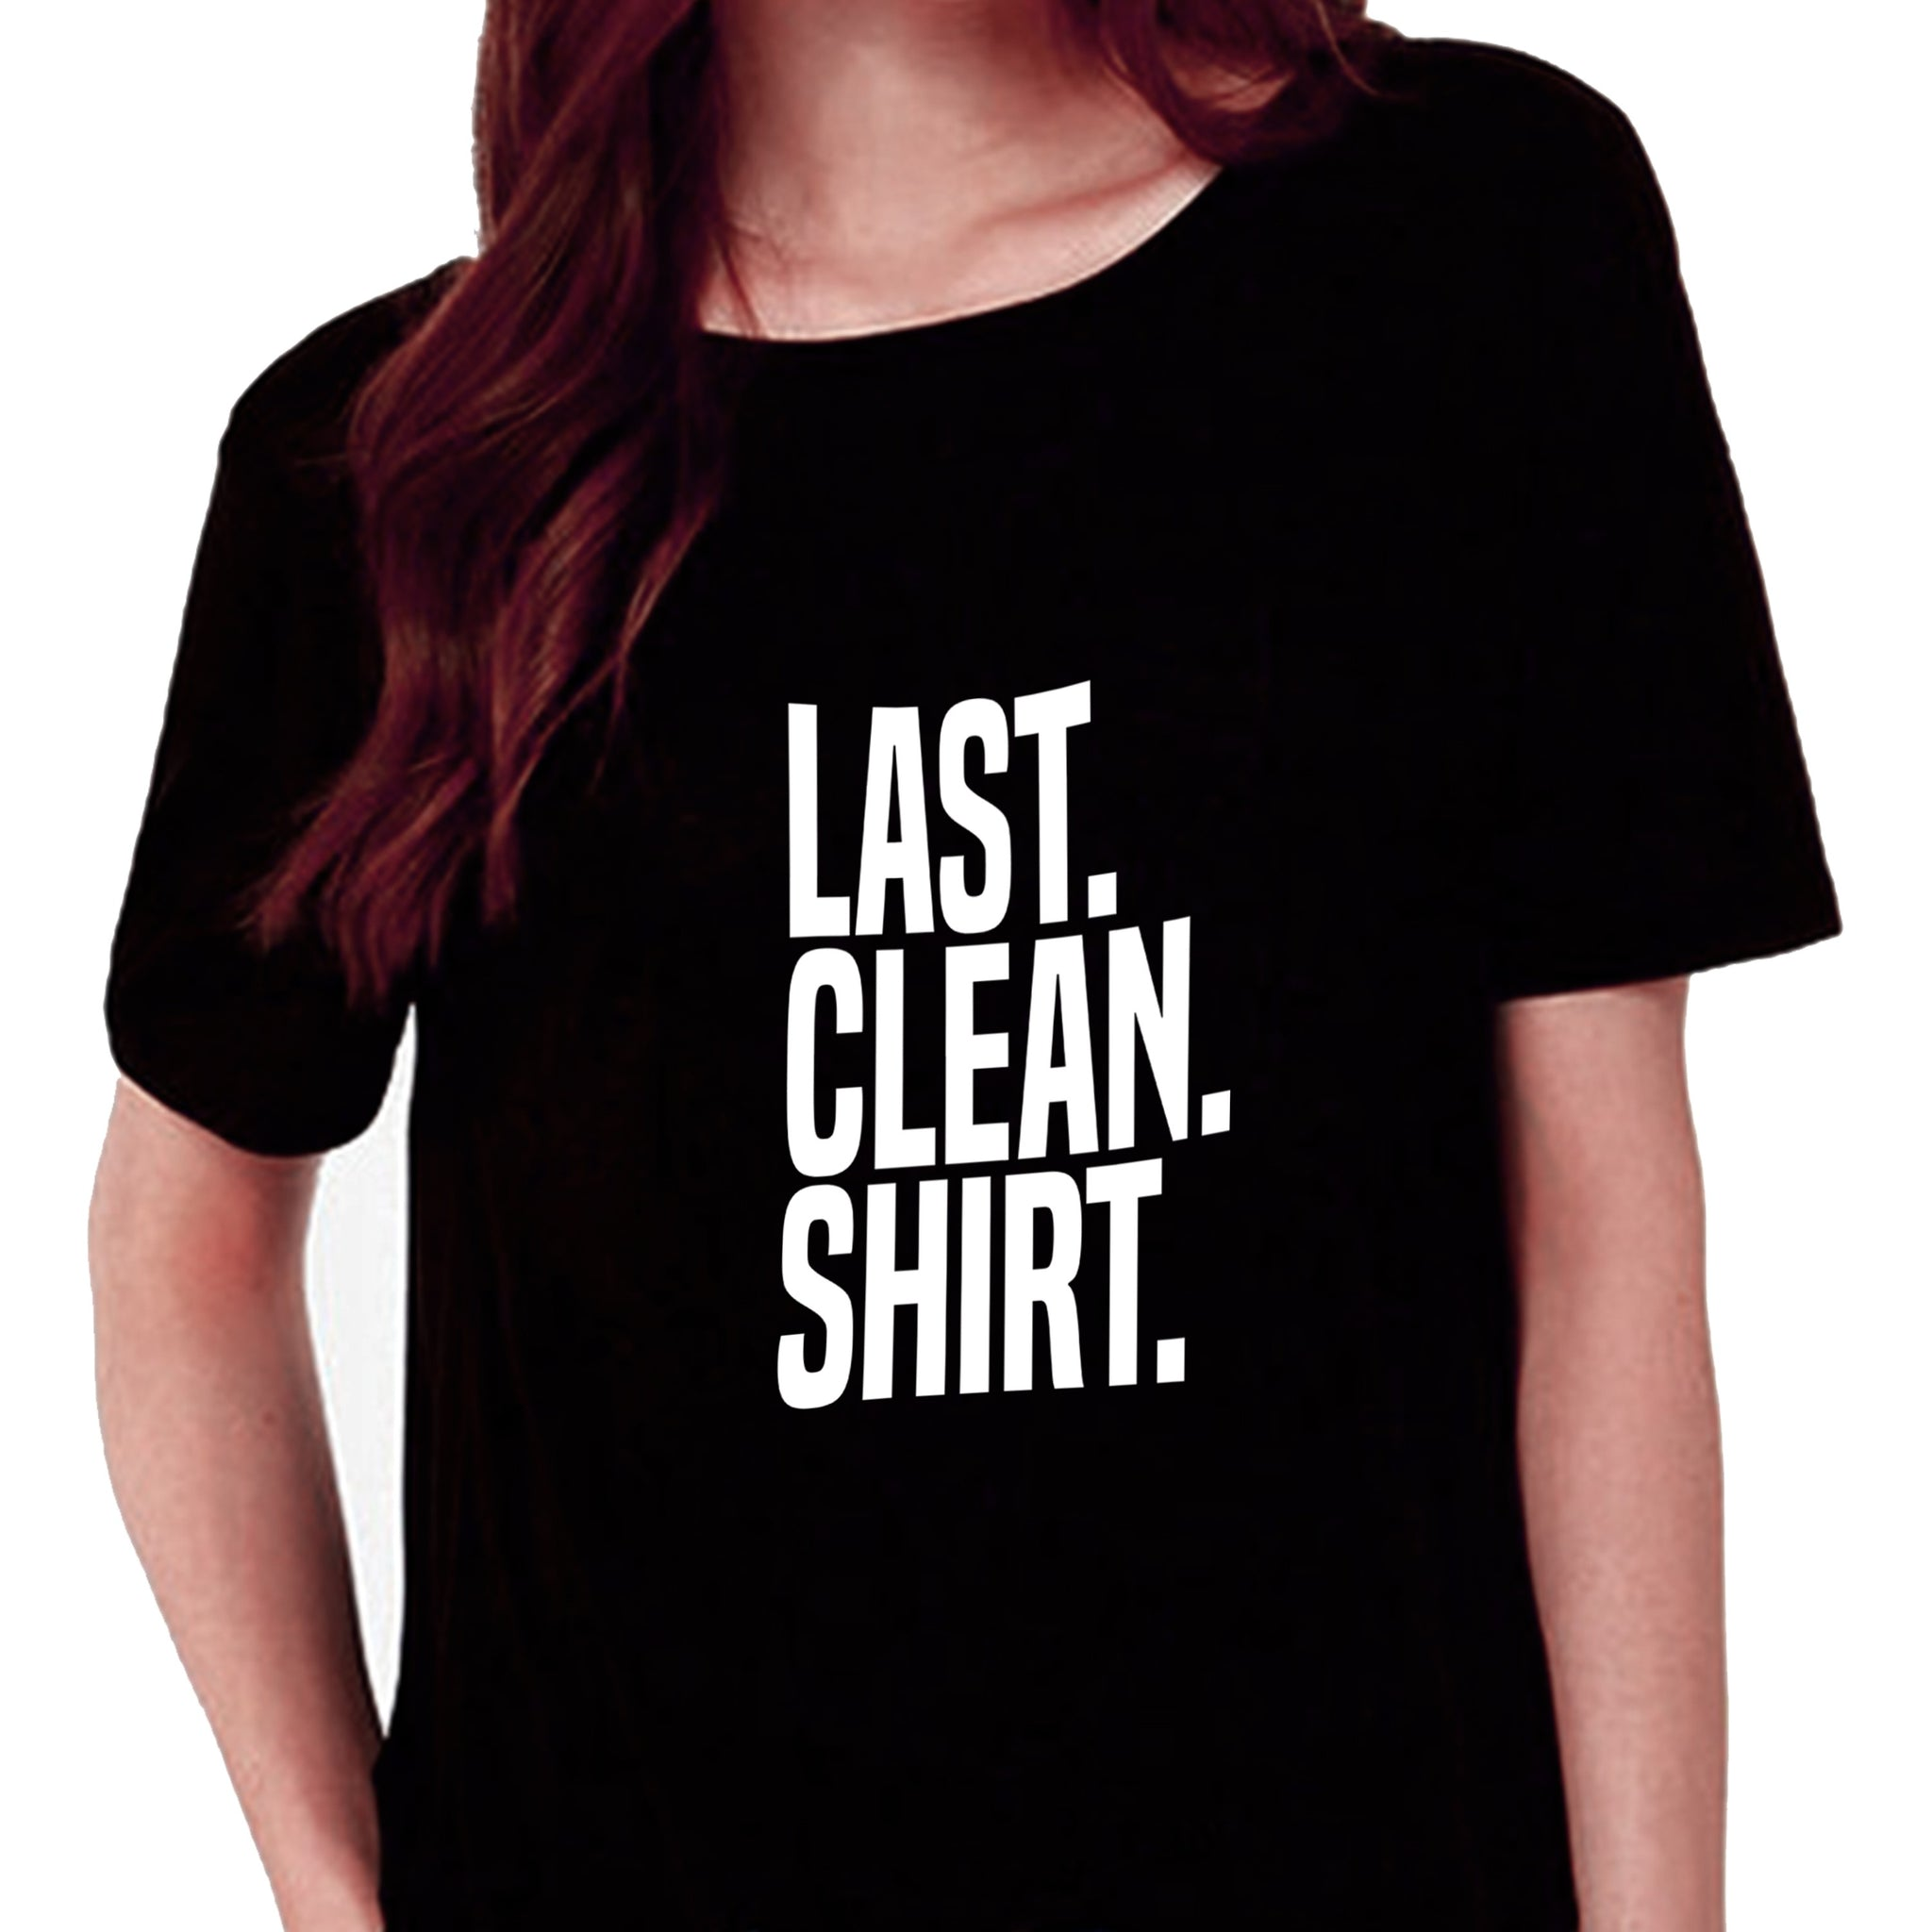 Last Clean Shirt T-shirt for Women - Let's Beach